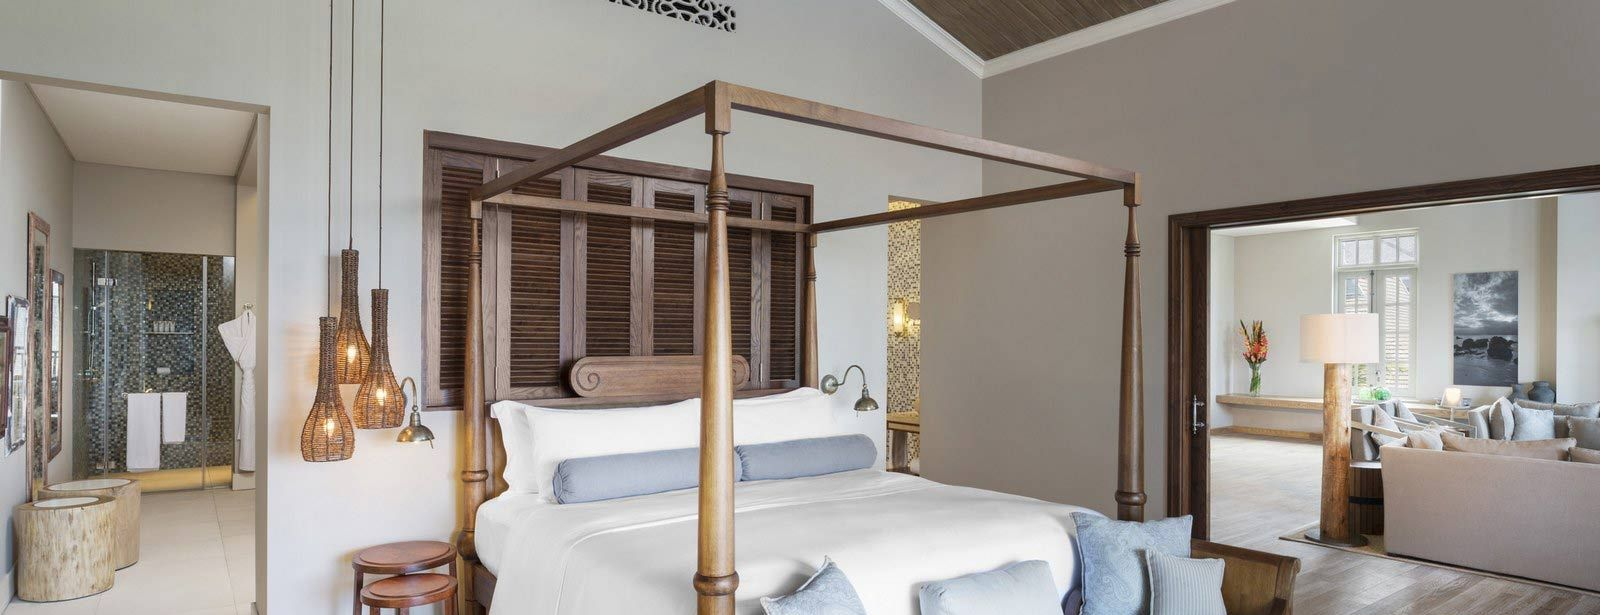 St. Regis Mauritius Ocean View Grand Manor House Suite bedroom